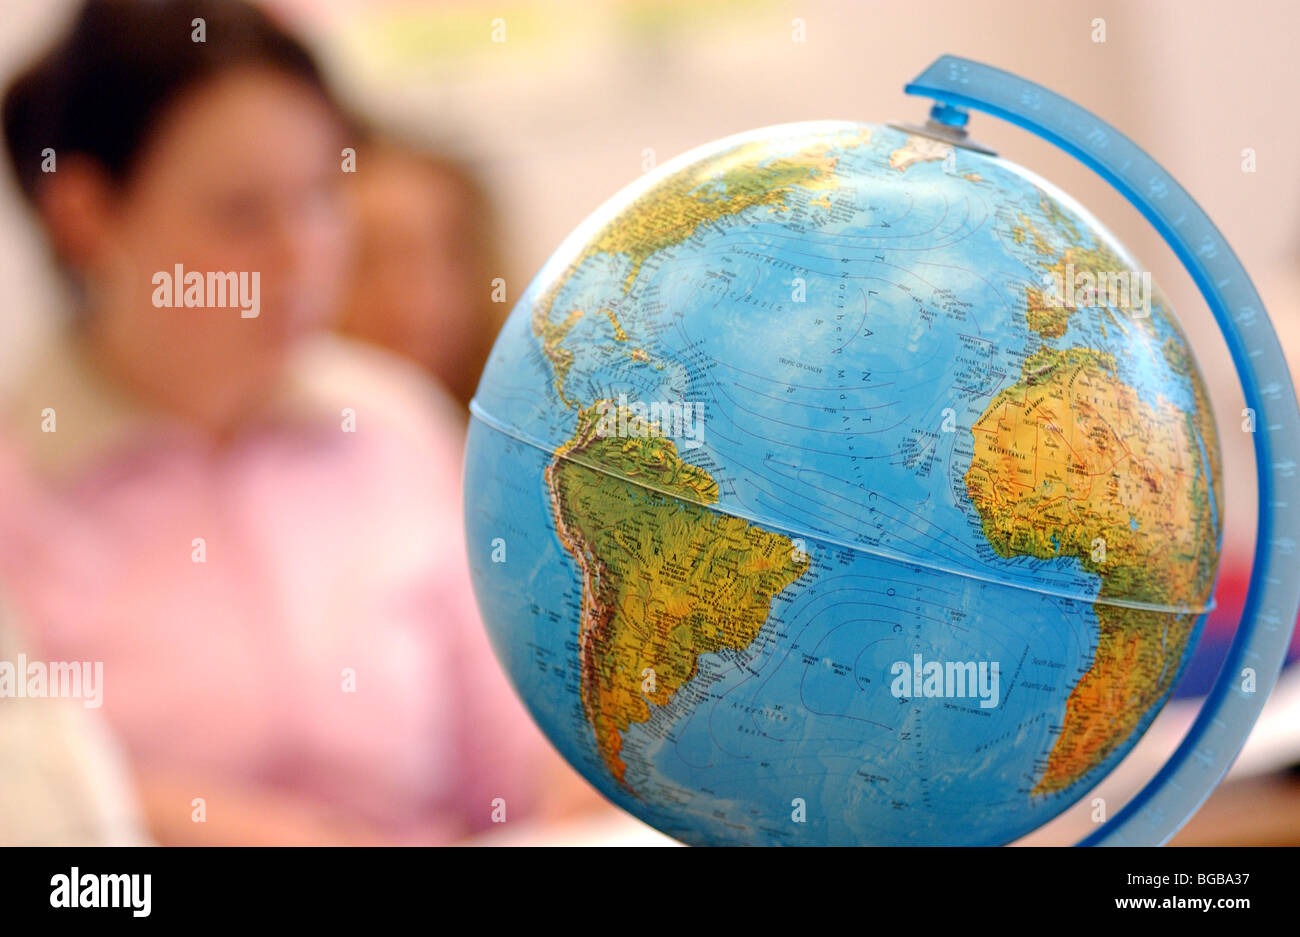 Royalty free photograph of student class geography globe college university - Stock Image